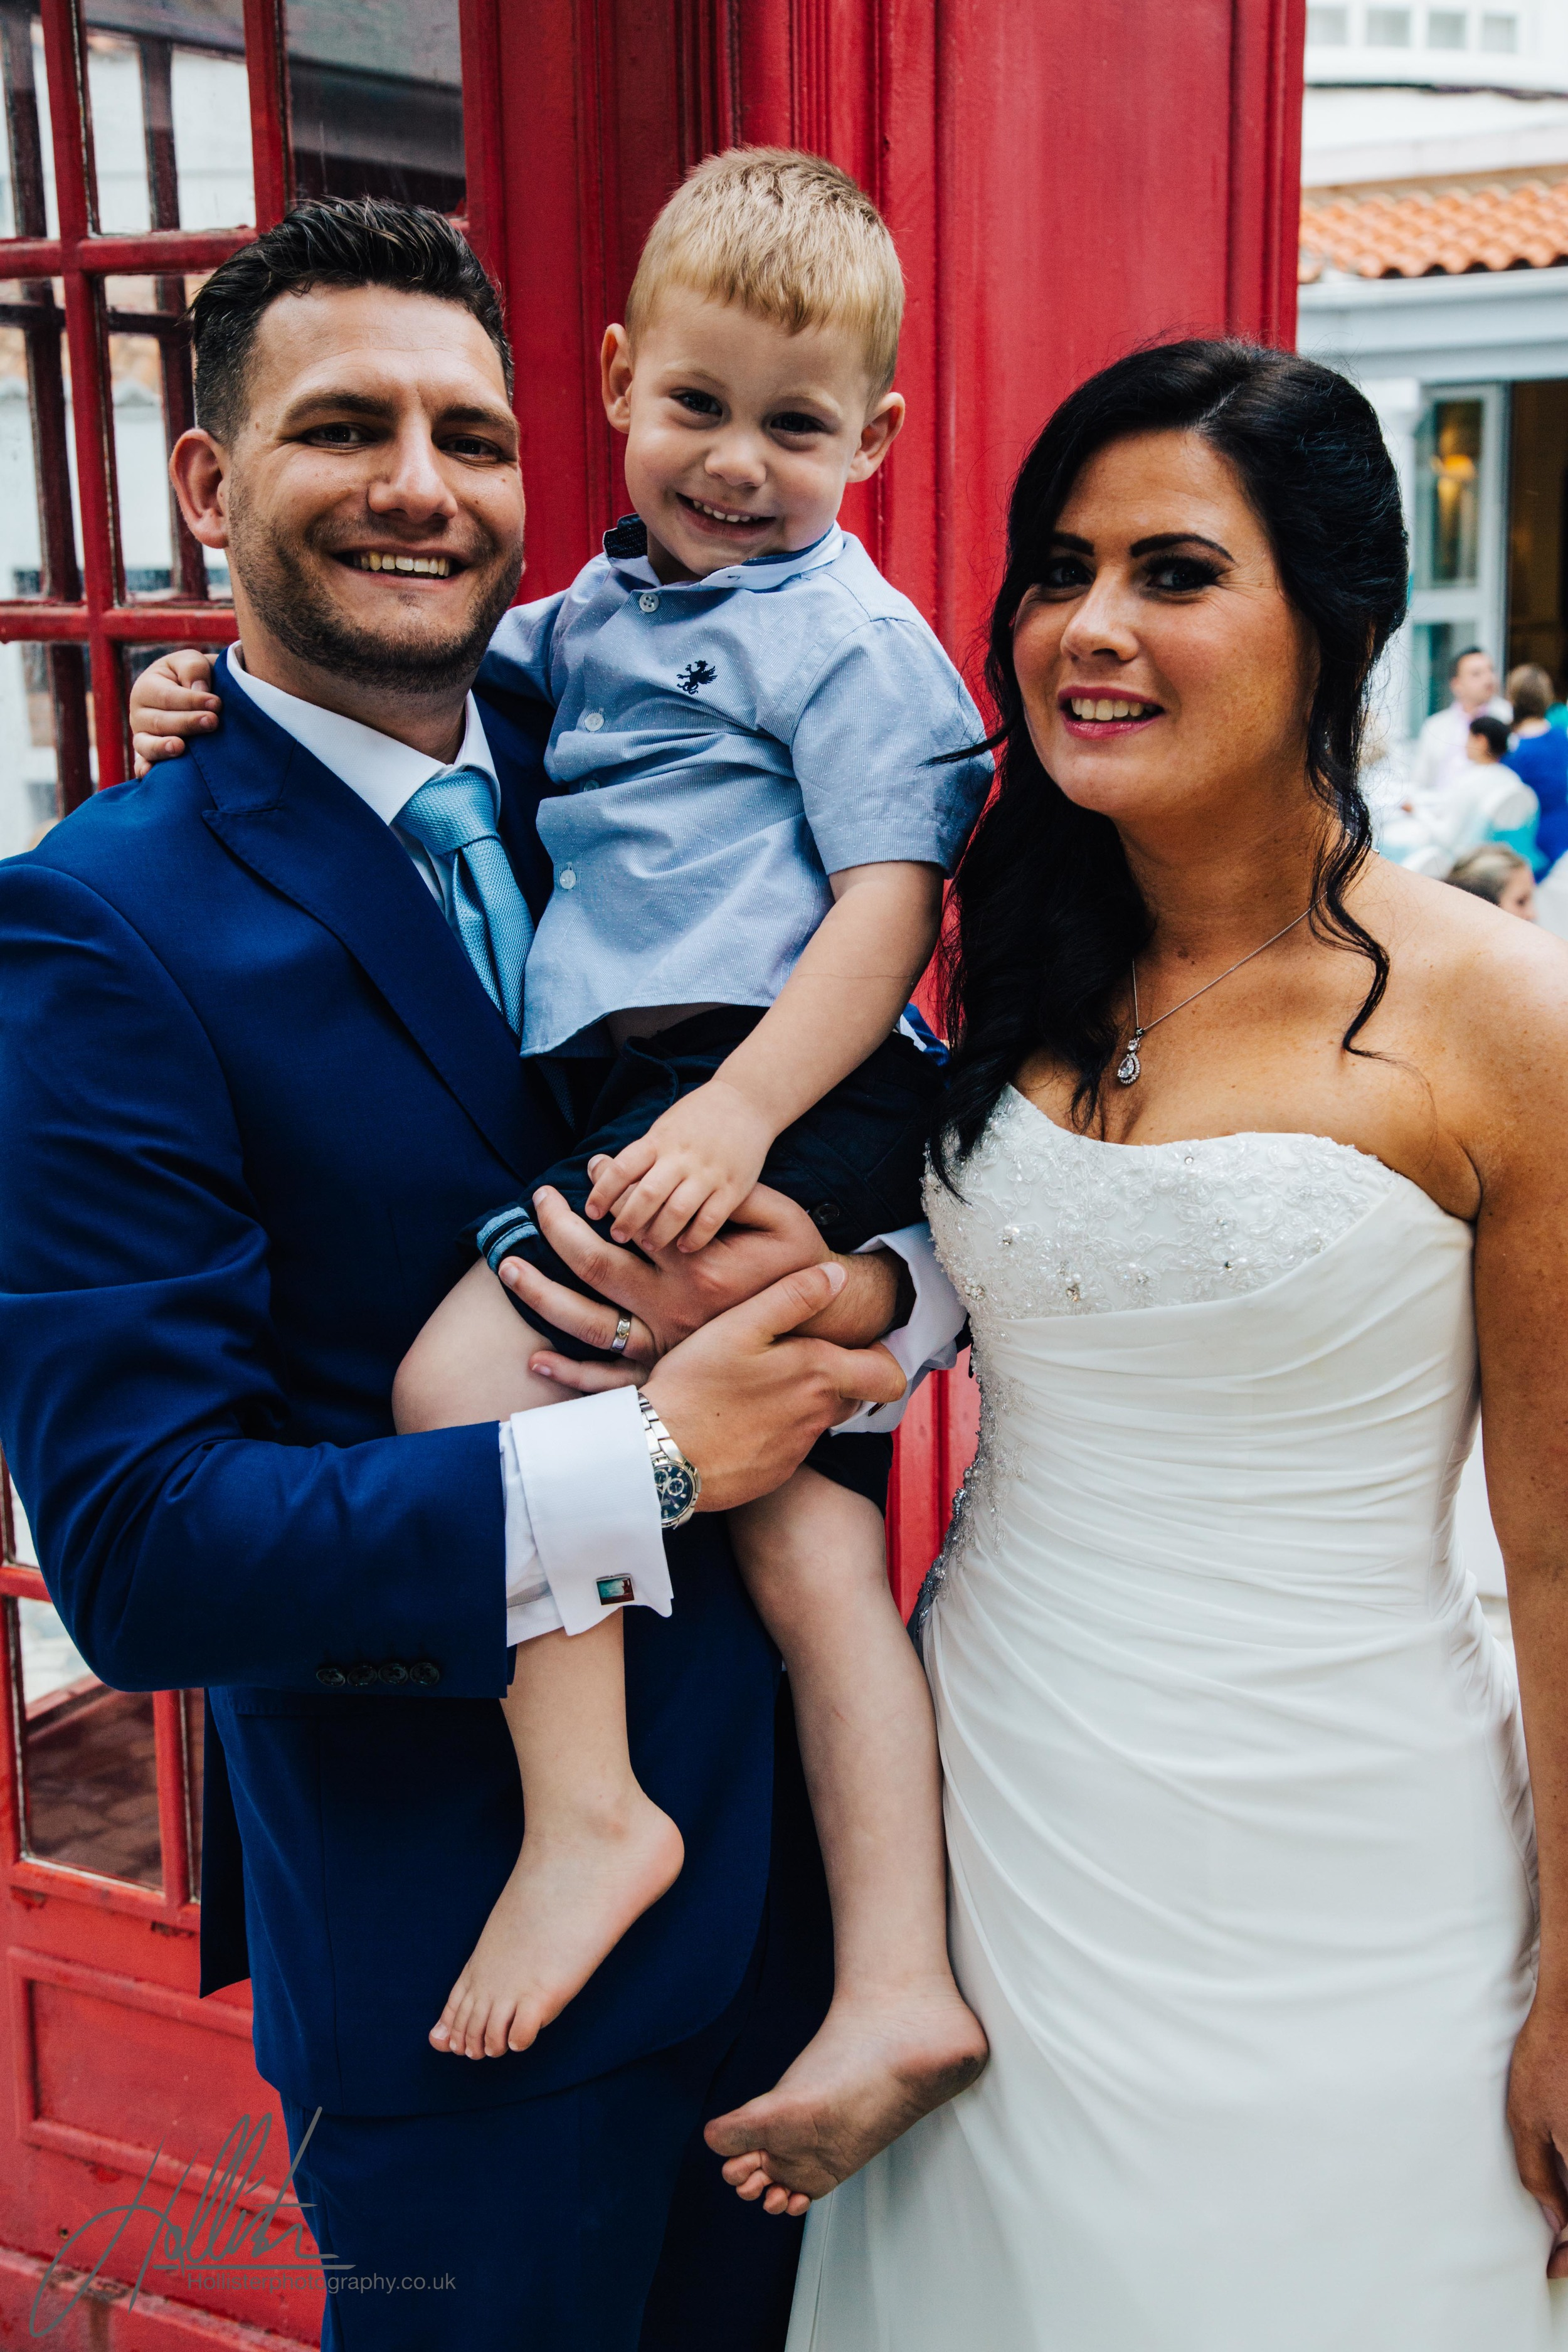 Stu and Firons Gibraltan Wedding june 6th 2015  WATERMARKED-39.jpg